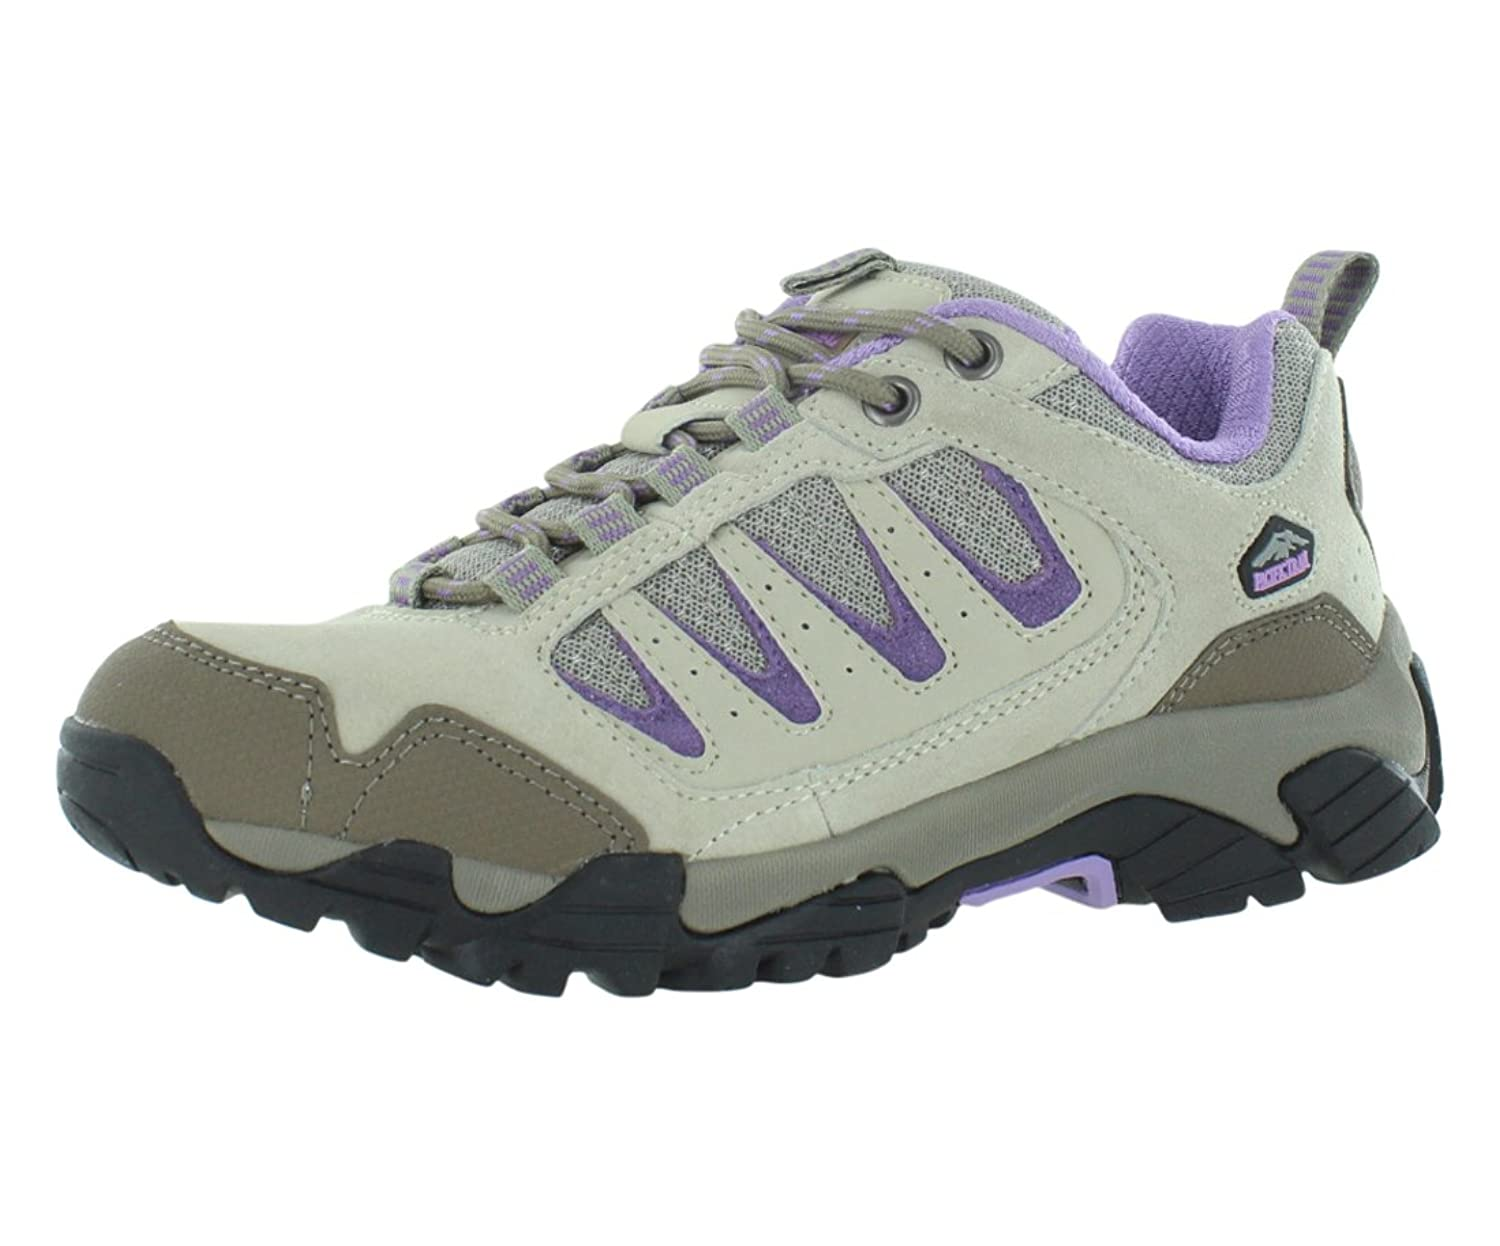 Pacific Trail Alta Hiking Boots Women's Shoes Size 6.5